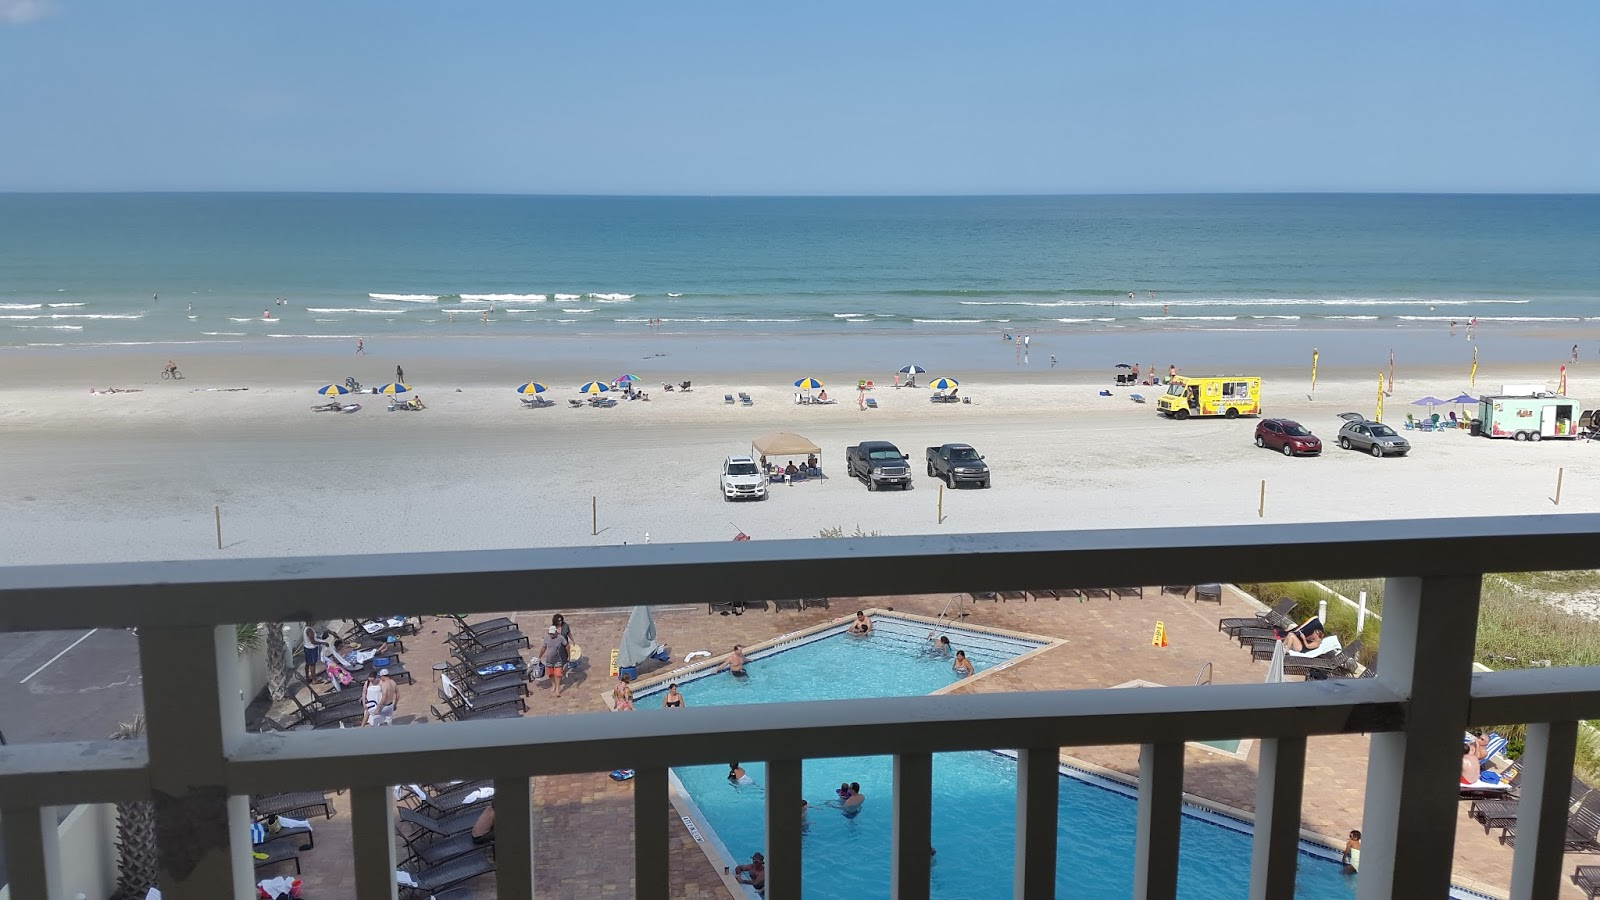 We Were On The 4th Floor Room 411 This Photo Was Taken A Sunday Afternoon When First Arrived As You Can See Beach Not Very Crowded